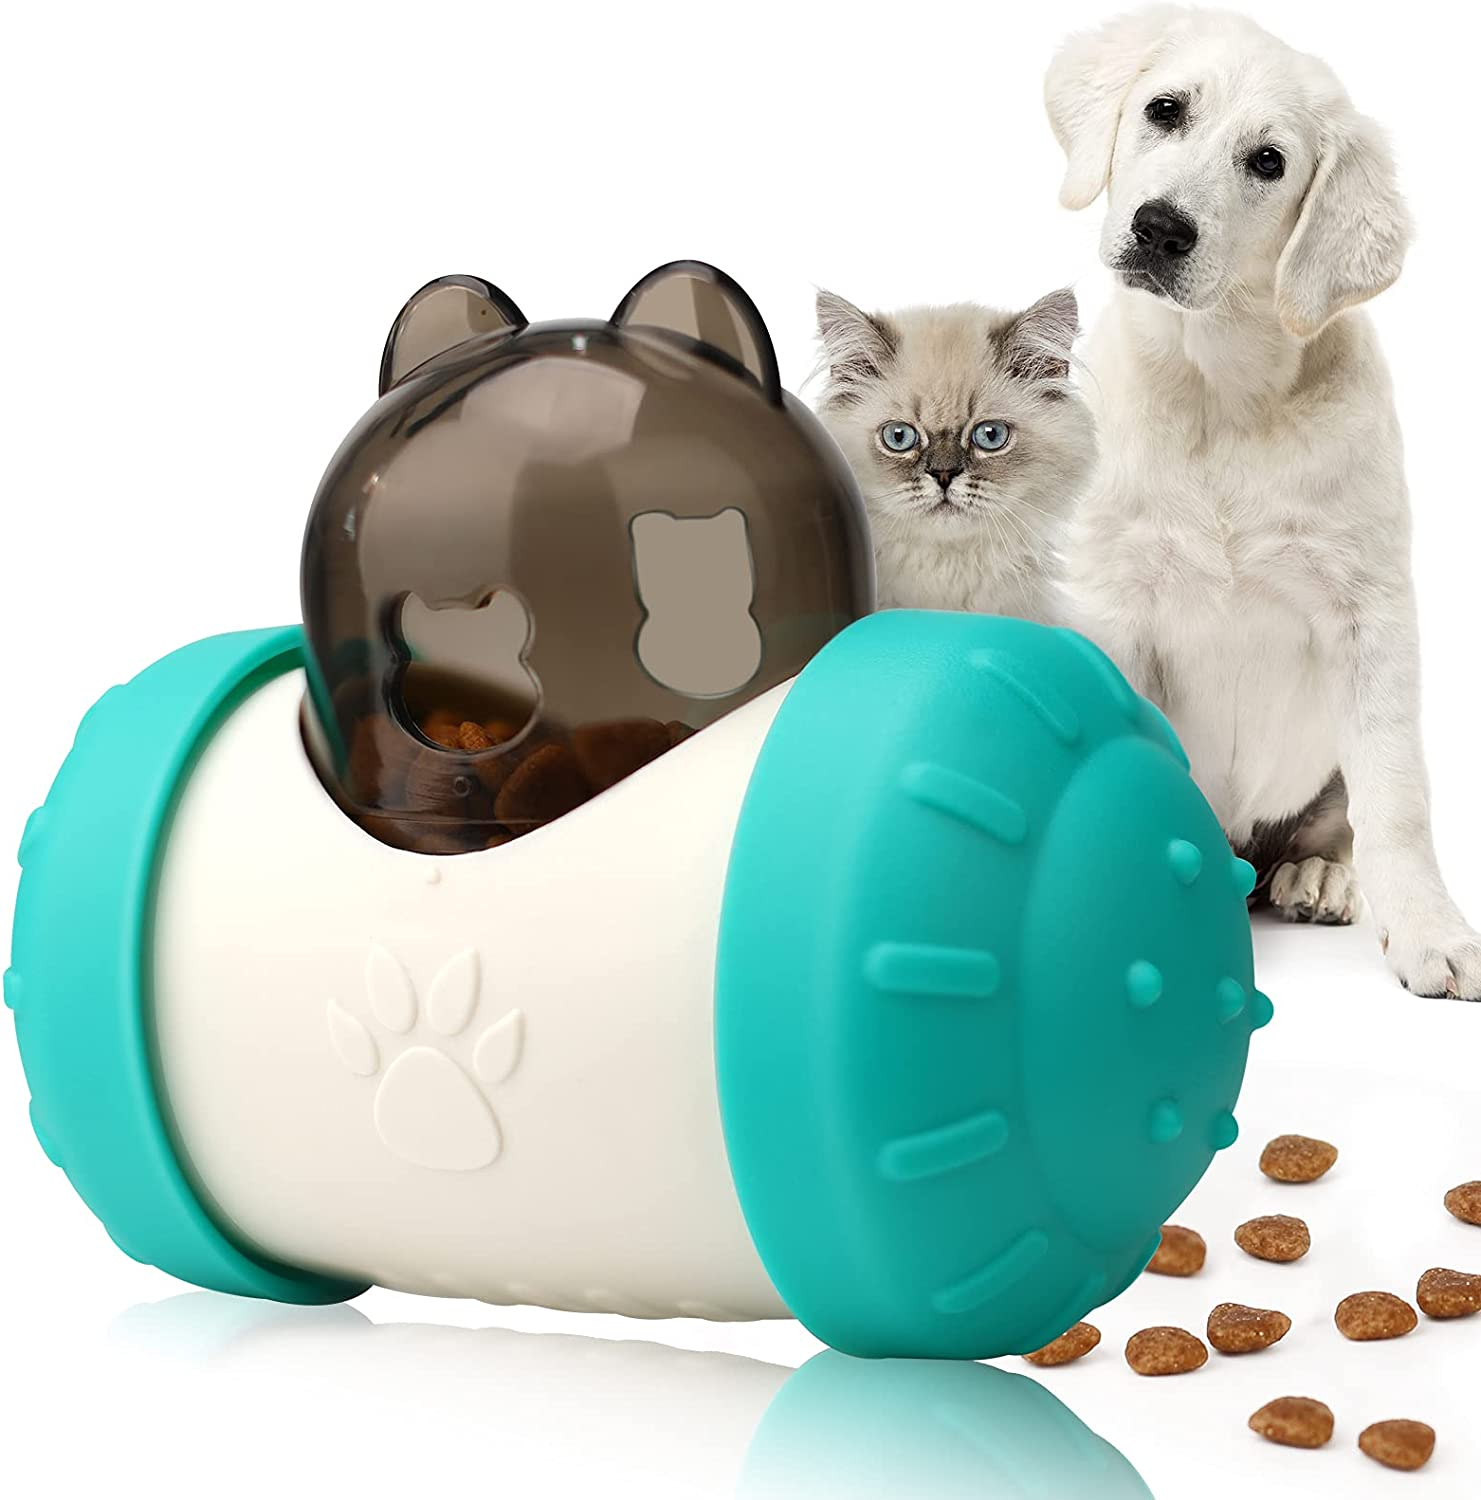 Kakeedoo Cat Dog Food Dispensing Toy, Interactive Treat Dispensing Dog Toys Pet Slow Feeder Puzzle Toys for Relieving Anxiety & IQ improving